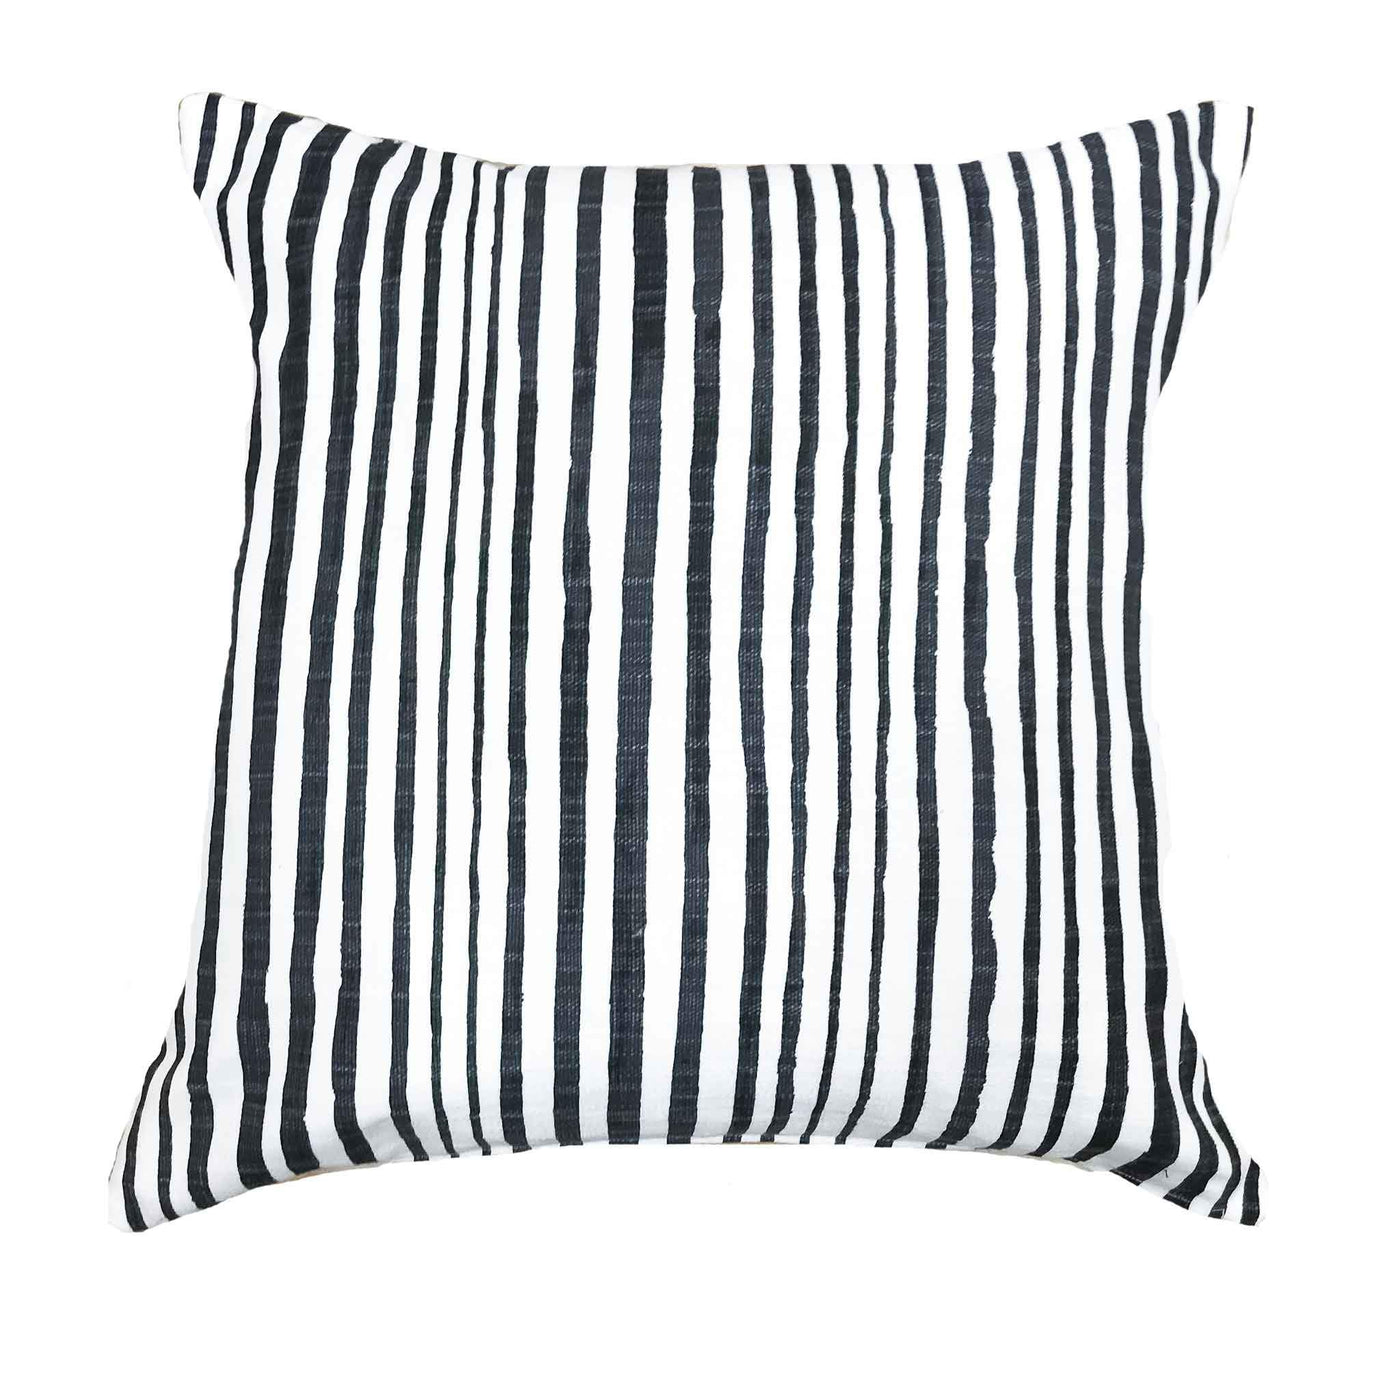 Luxe linen black and white stripe pillows - DIEGO - Studio Pillows